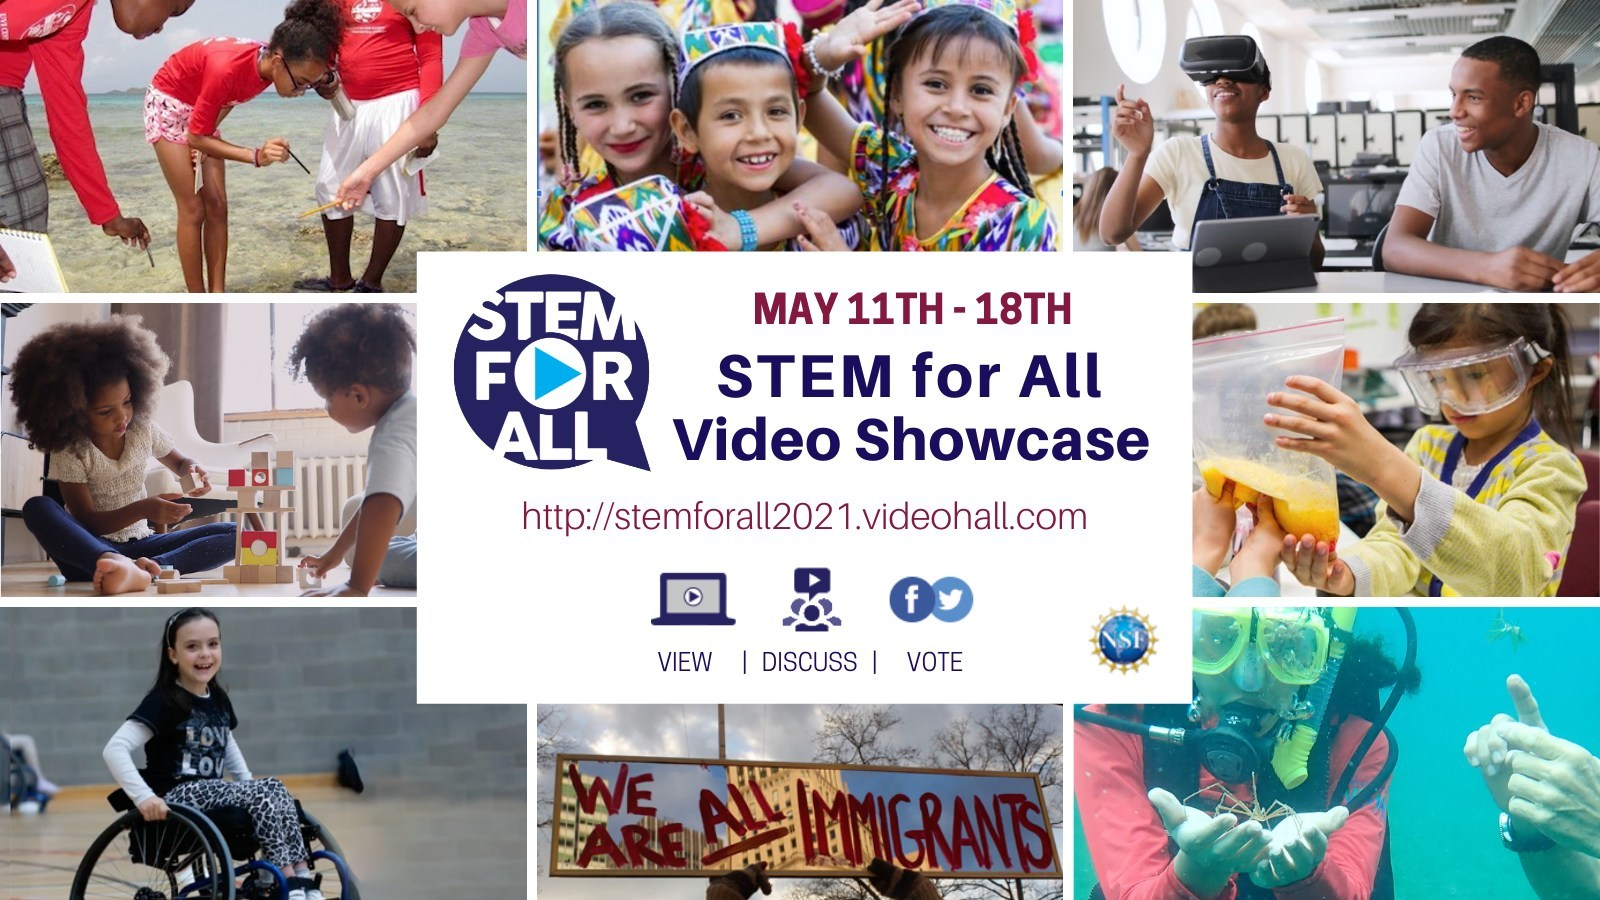 May 11-18, 2021 STEM for All Video Showcase